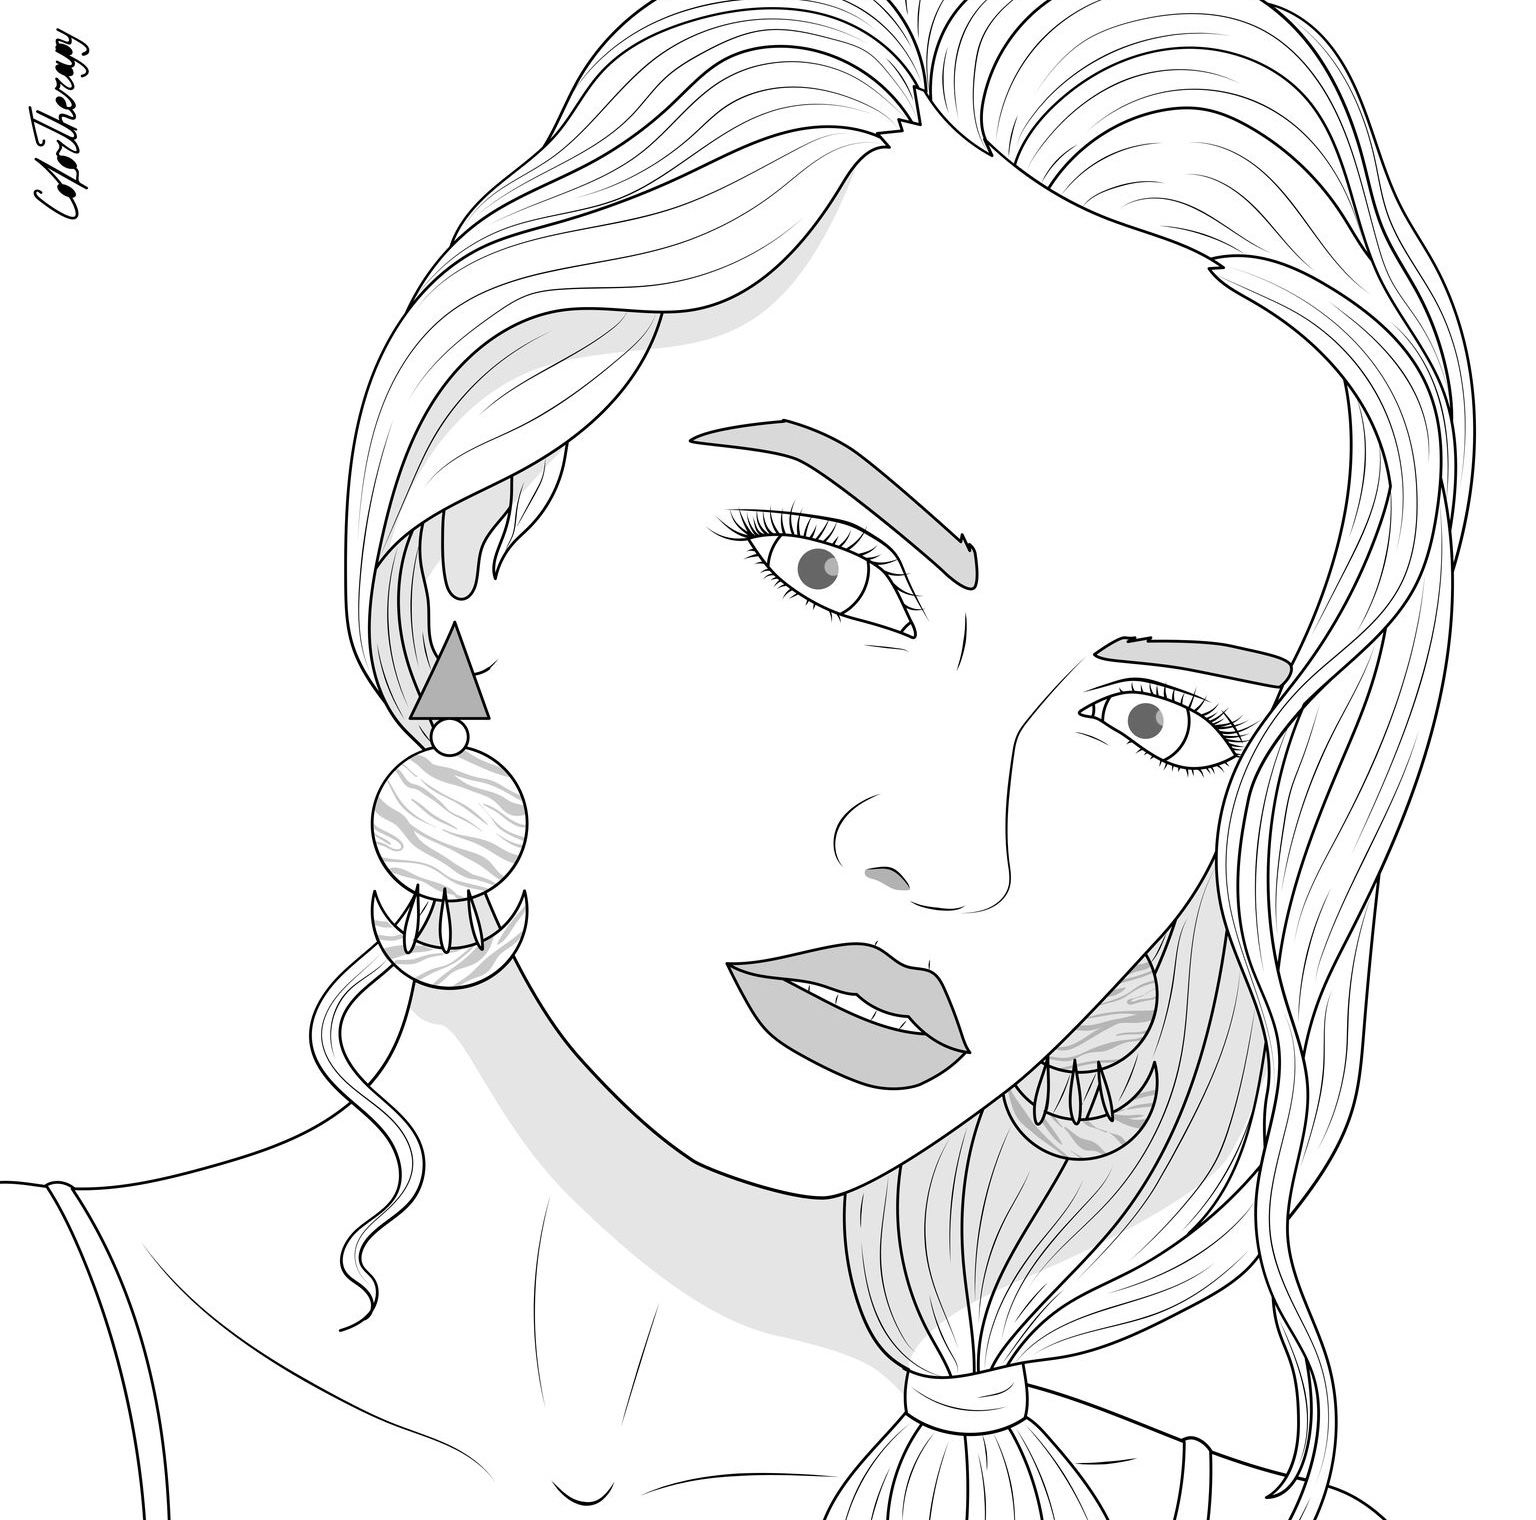 Totally Free Coloring Pages To Unwind While We Re On Social Distancing With Color Therapy App Coloring Pages Free Coloring Pages Coloring Books